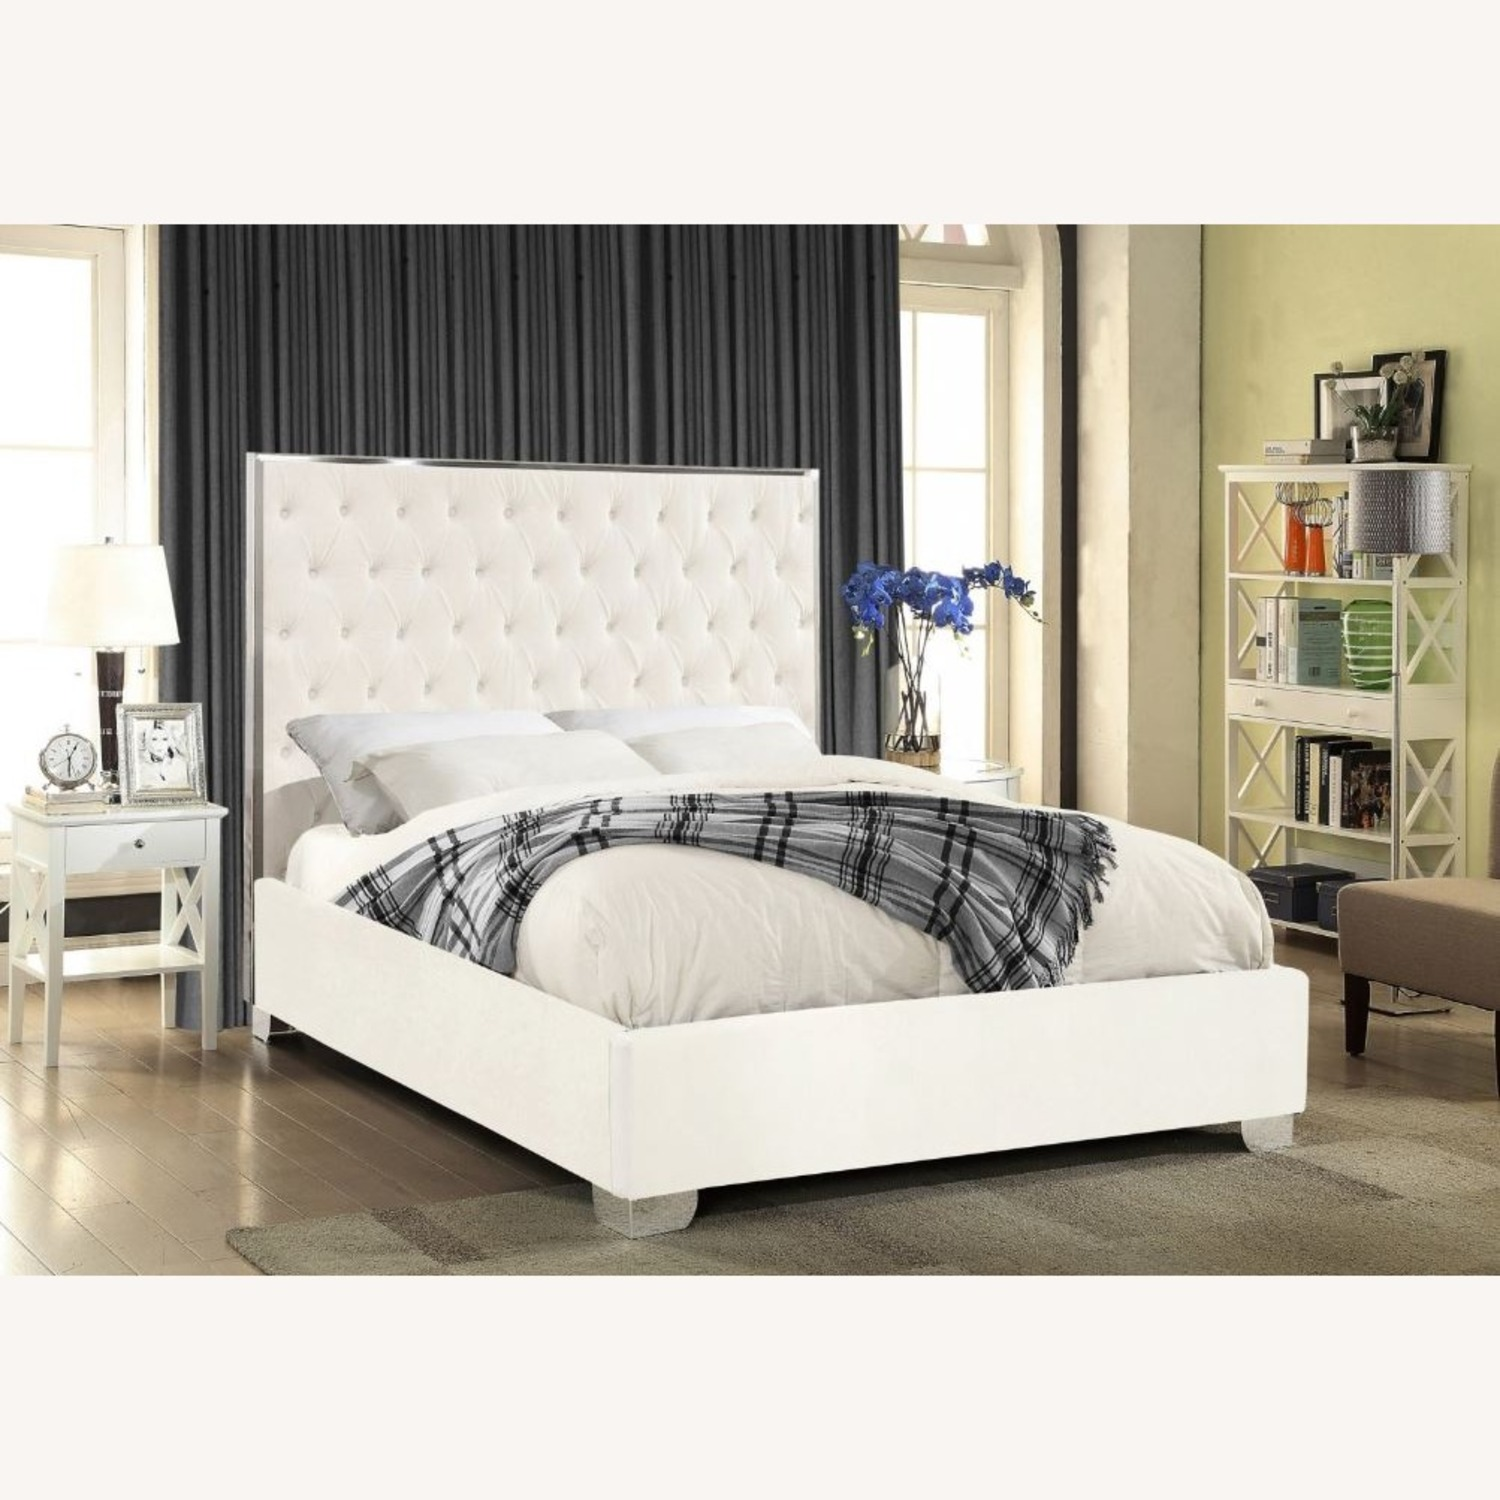 Wayfair Queen White Upholstered Platform Bed - image-2